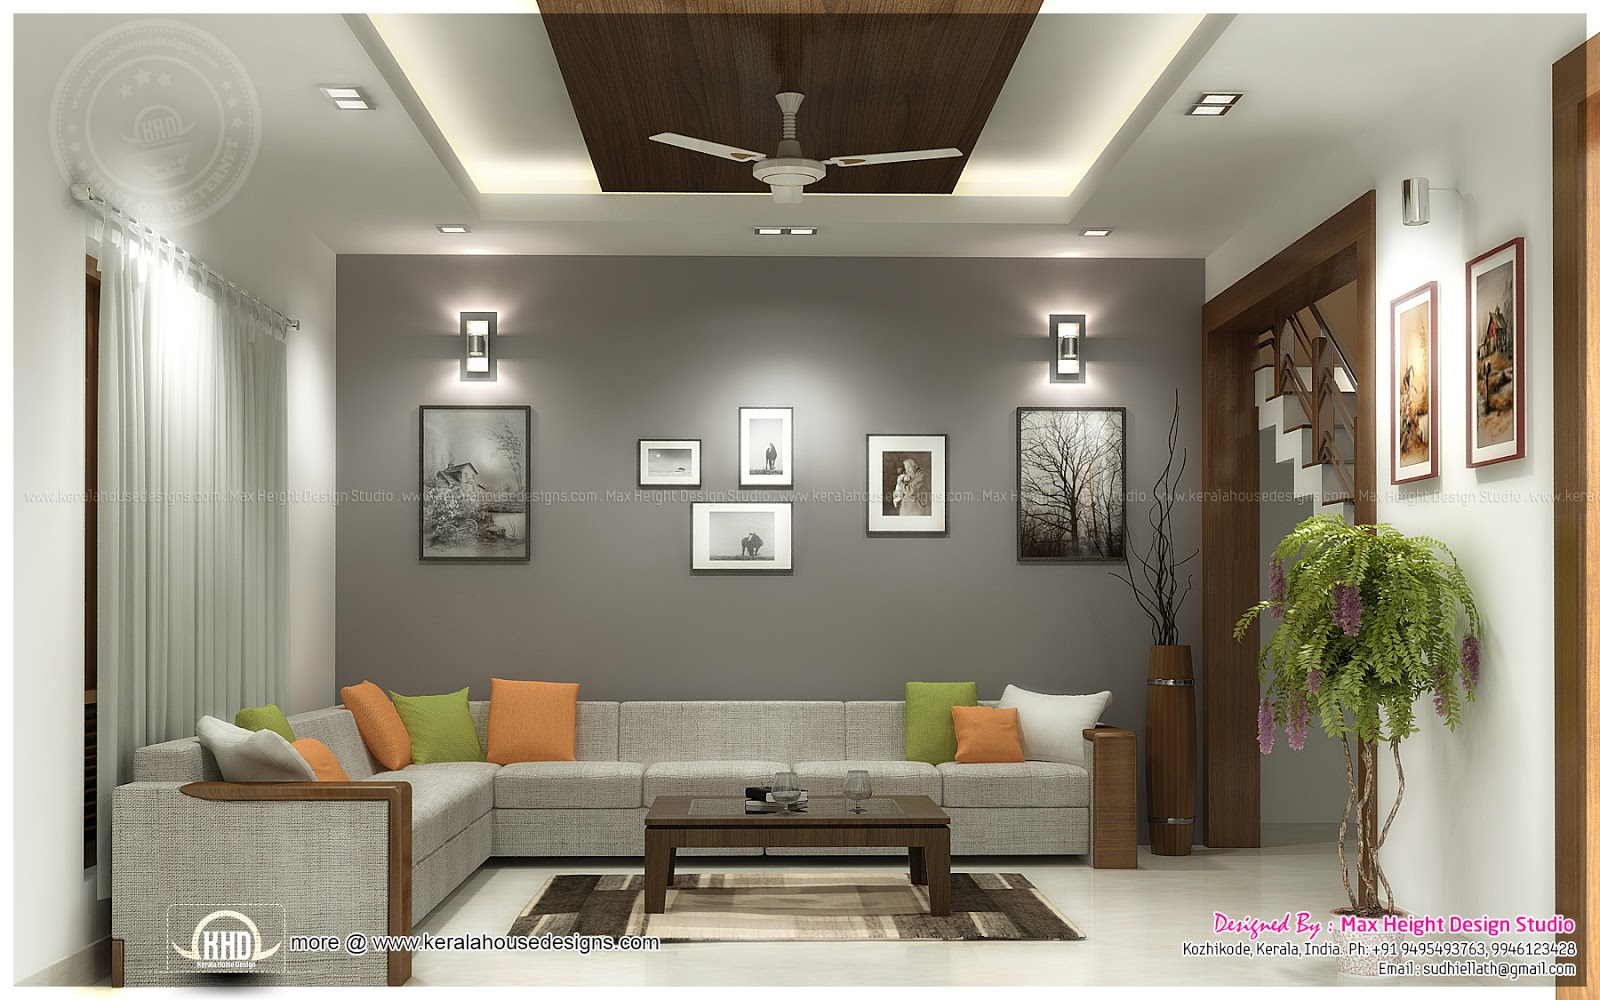 Beautiful interior ideas for home kerala home design and for Latest interior design ideas